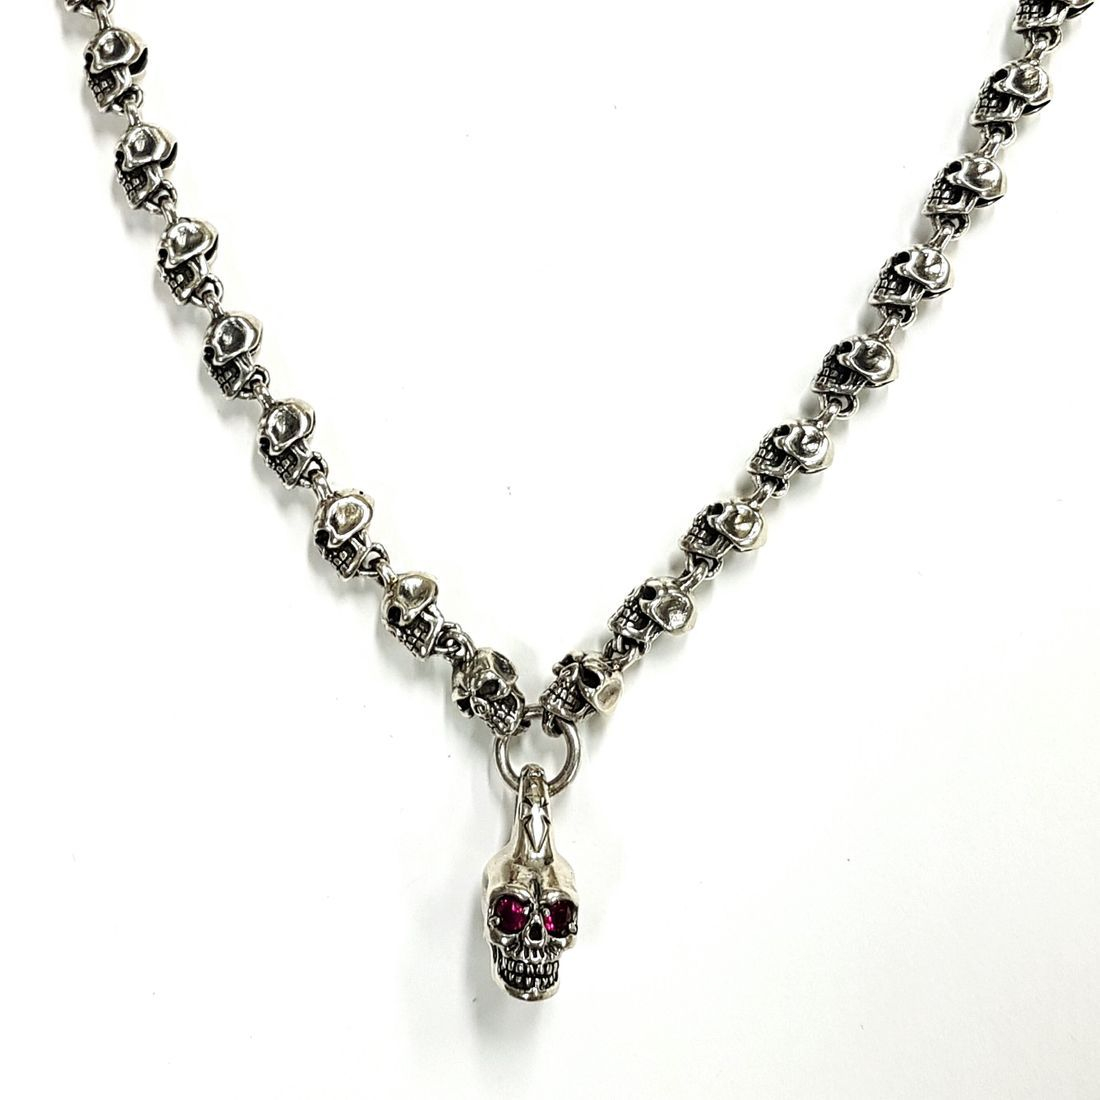 Solid Silver Skull Chain & Pendant  available at Kazbah online and our Leicester City Centre Shop